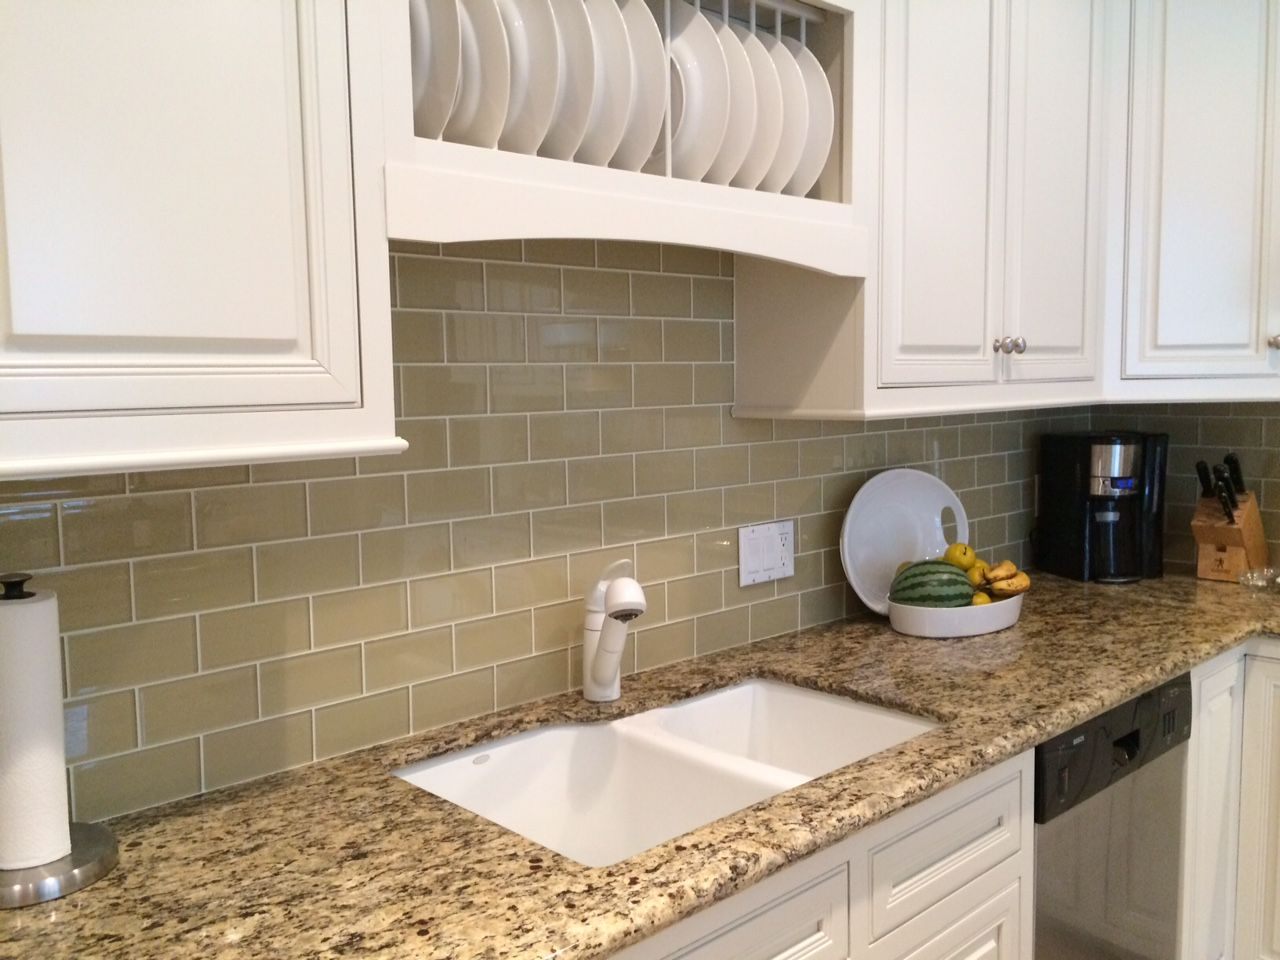 Amazing 12 Inch Floor Tiles Thick 2 X 2 Ceiling Tiles Solid 2 X 4 Subway Tile 2 X 8 Glass Subway Tile Youthful 20X20 Floor Tile Purple2X4 Ceiling Tiles Cheap Khaki Glass Subway Tile | Subway Tile Backsplash, Subway Tiles And ..